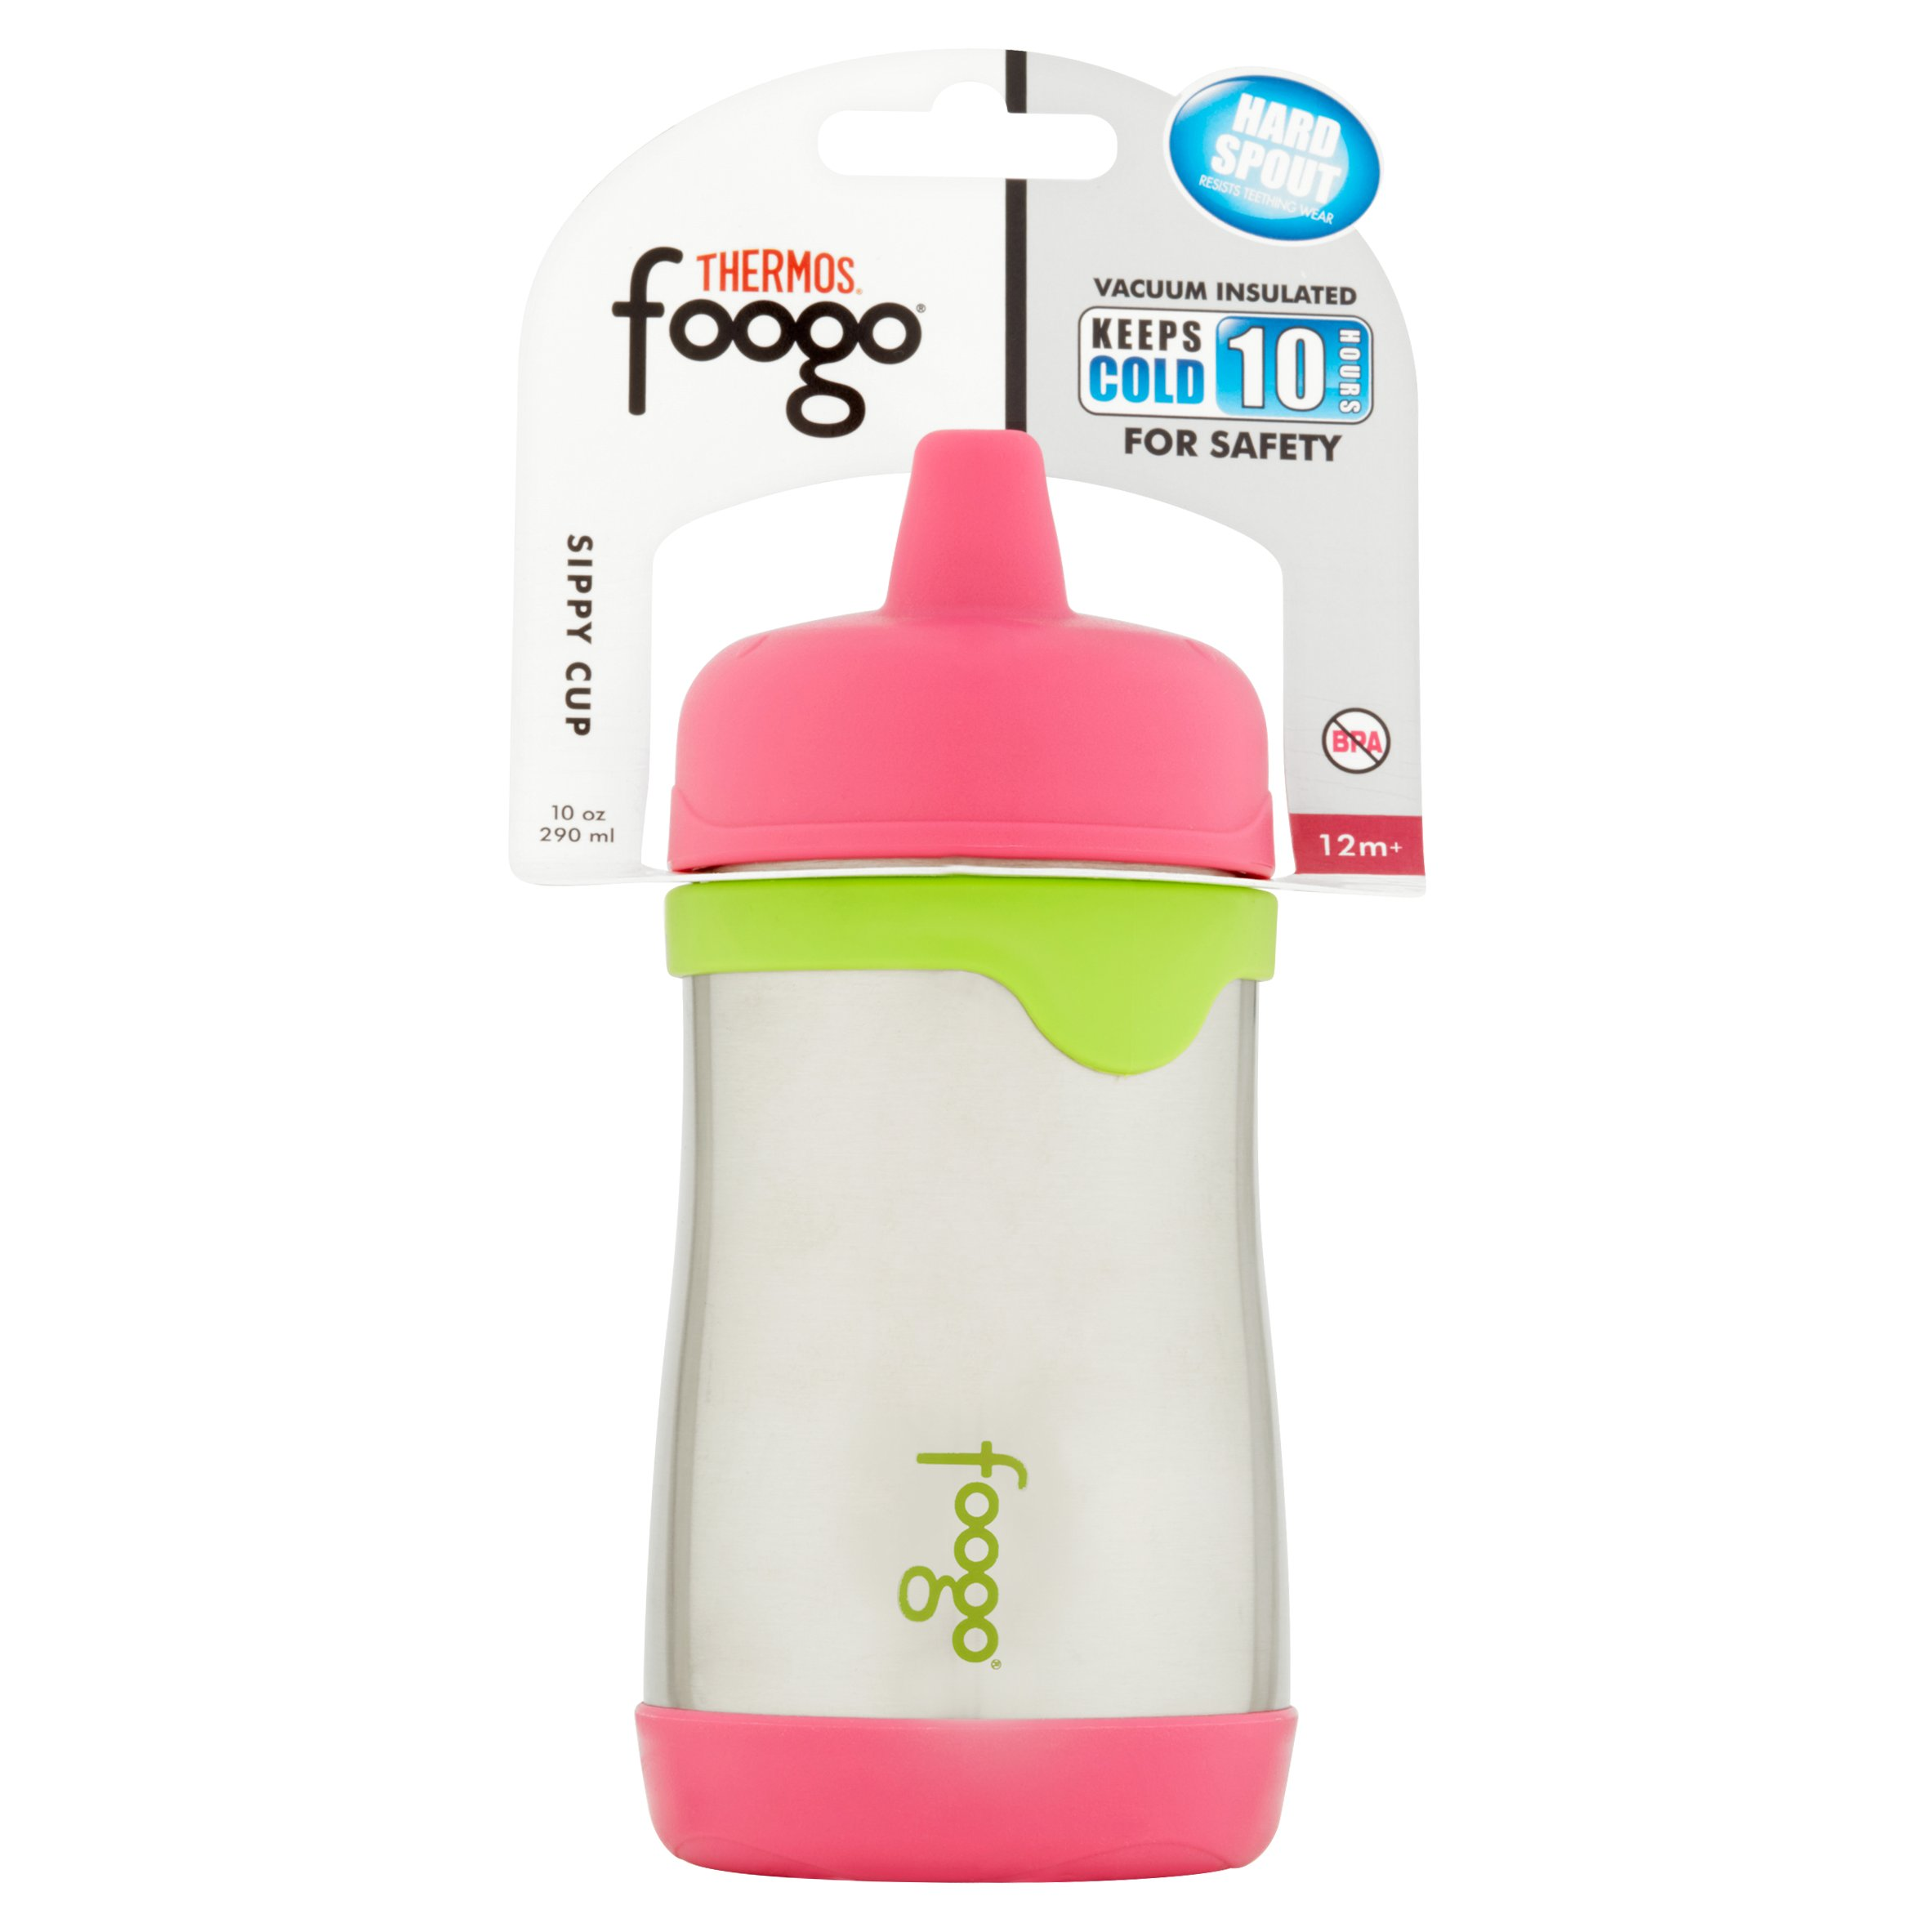 Thermos Foogo Vacuum Insulated Hard Spout Sippy Cup - Stainless Steel